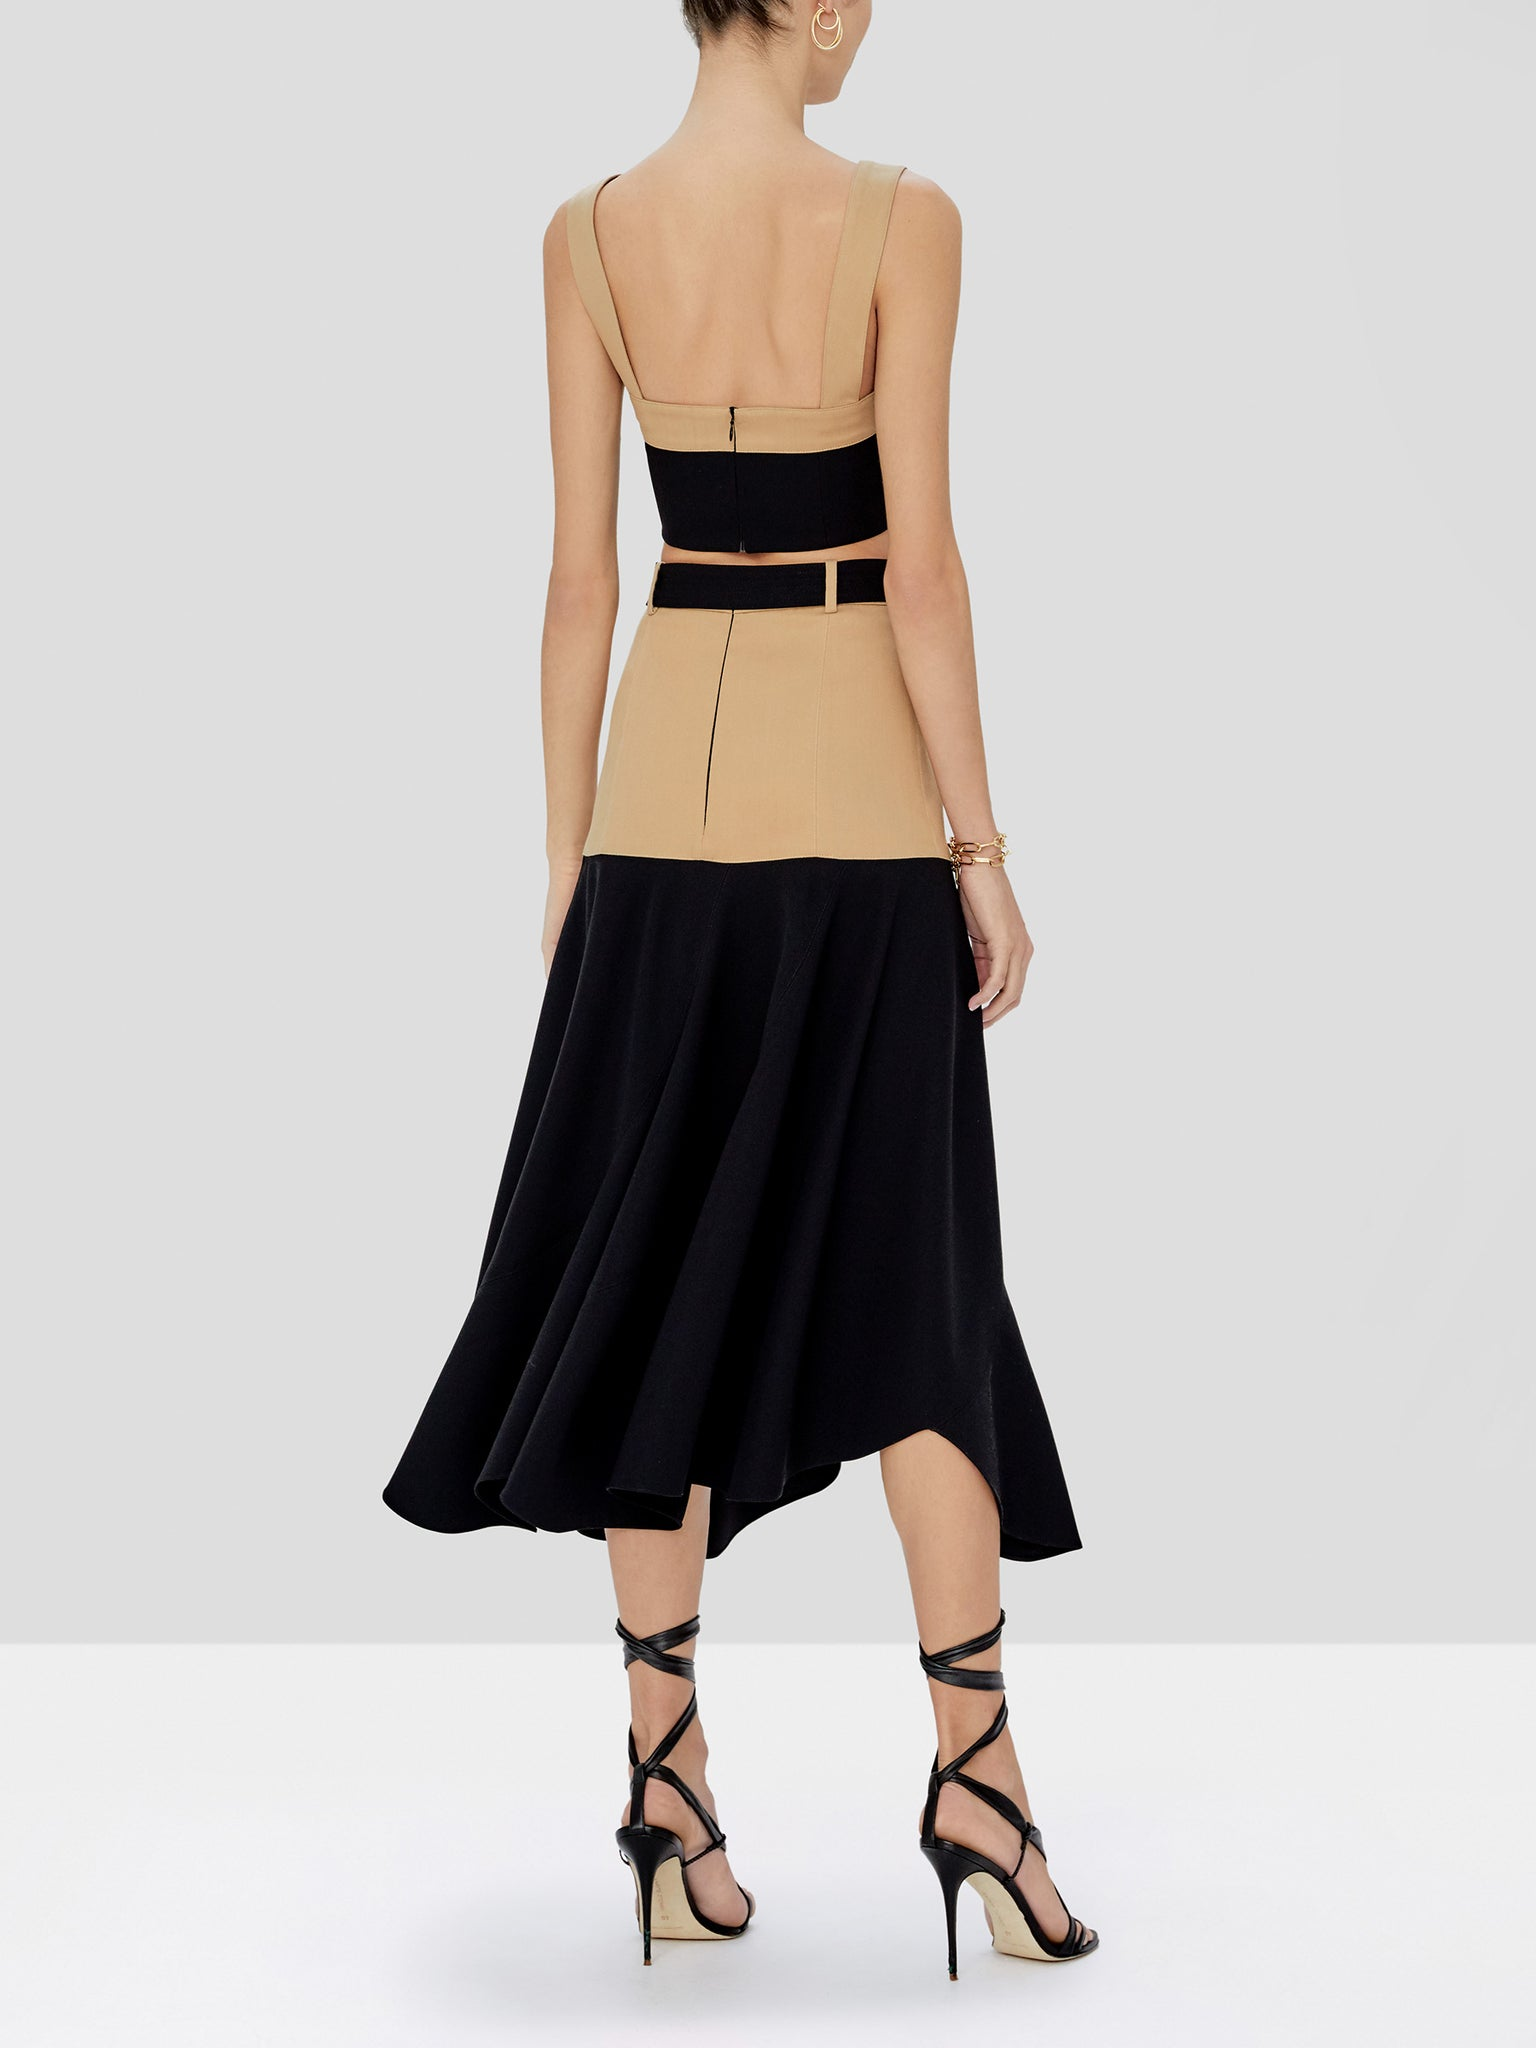 camila skirt in tan/black - Rear View